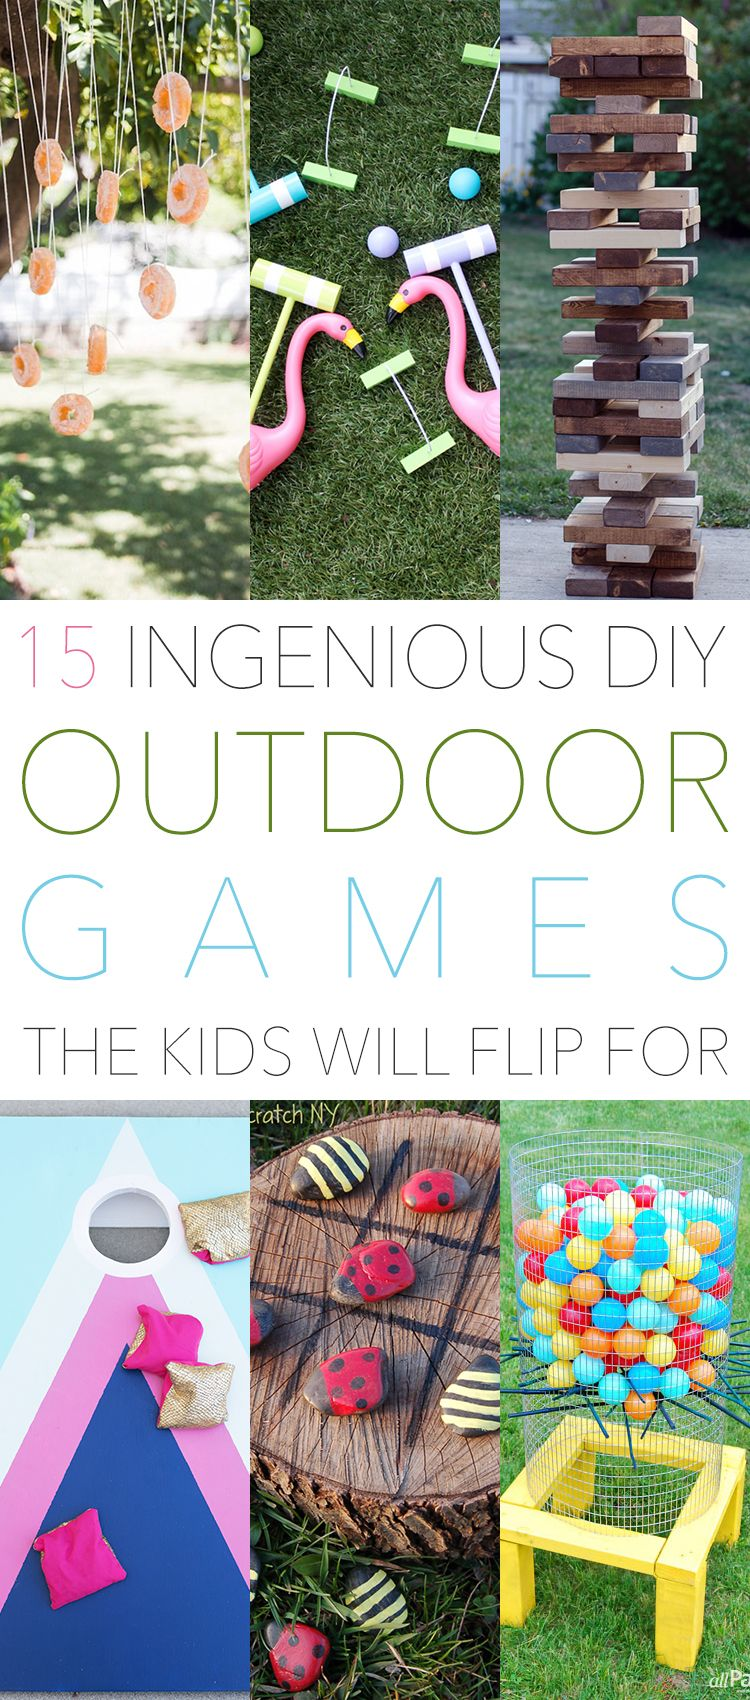 15 Ingenious DIY Outdoor Games The Kids Will Flip For (The